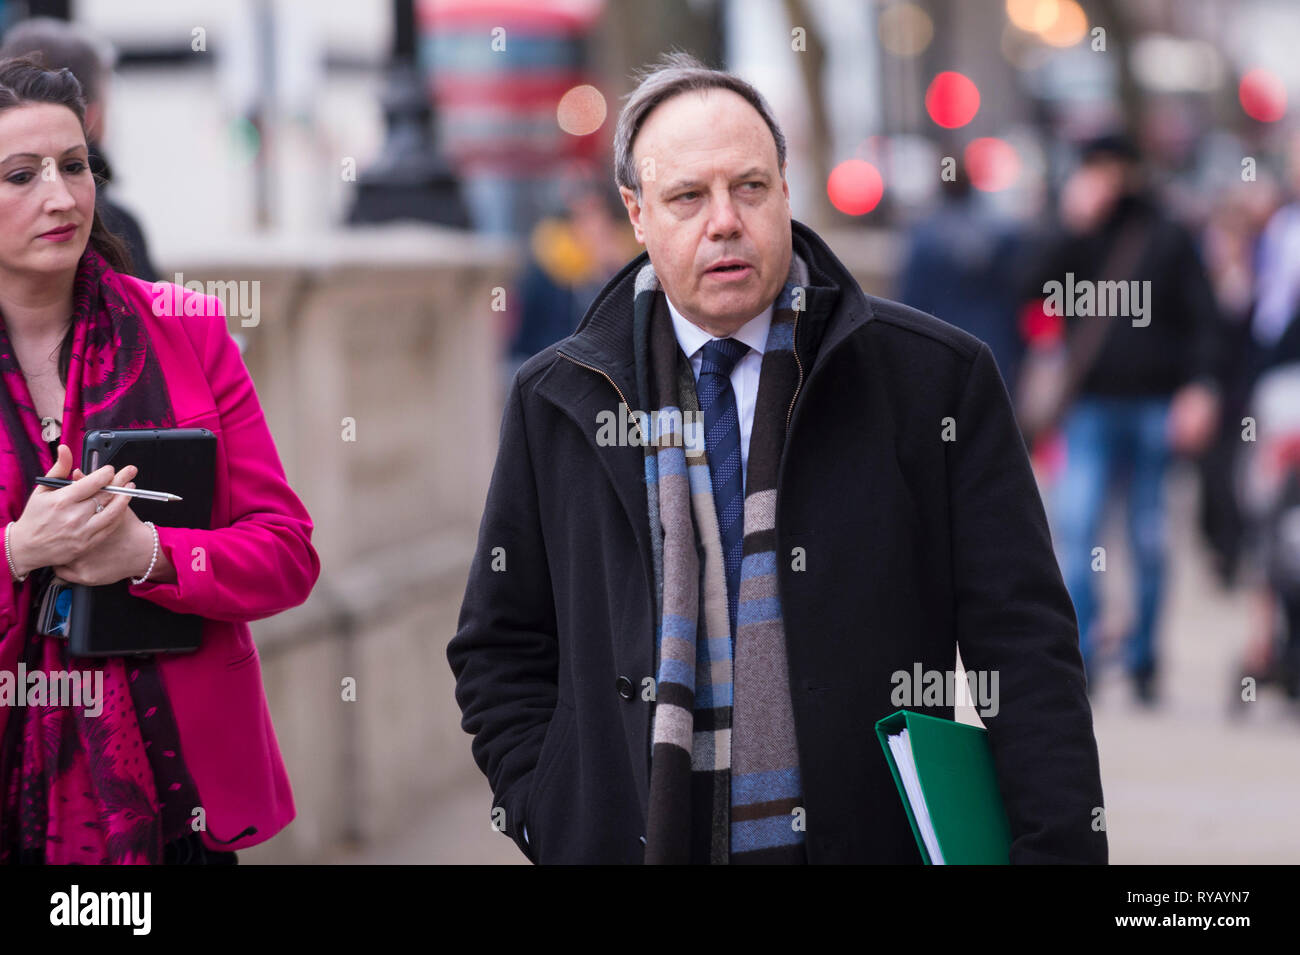 London, UK.  13 March 2019.  Nigel Dodds, MP for Belfast North, and deputy leader of the Democratic Unionist Party (DUP), arrives at the Cabinet Office in Whitehall for a meeting.  MPs are to vote in the House of Commons whether to remove no deal as a Brexit option.  Credit: Stephen Chung / Alamy Live News - Stock Image